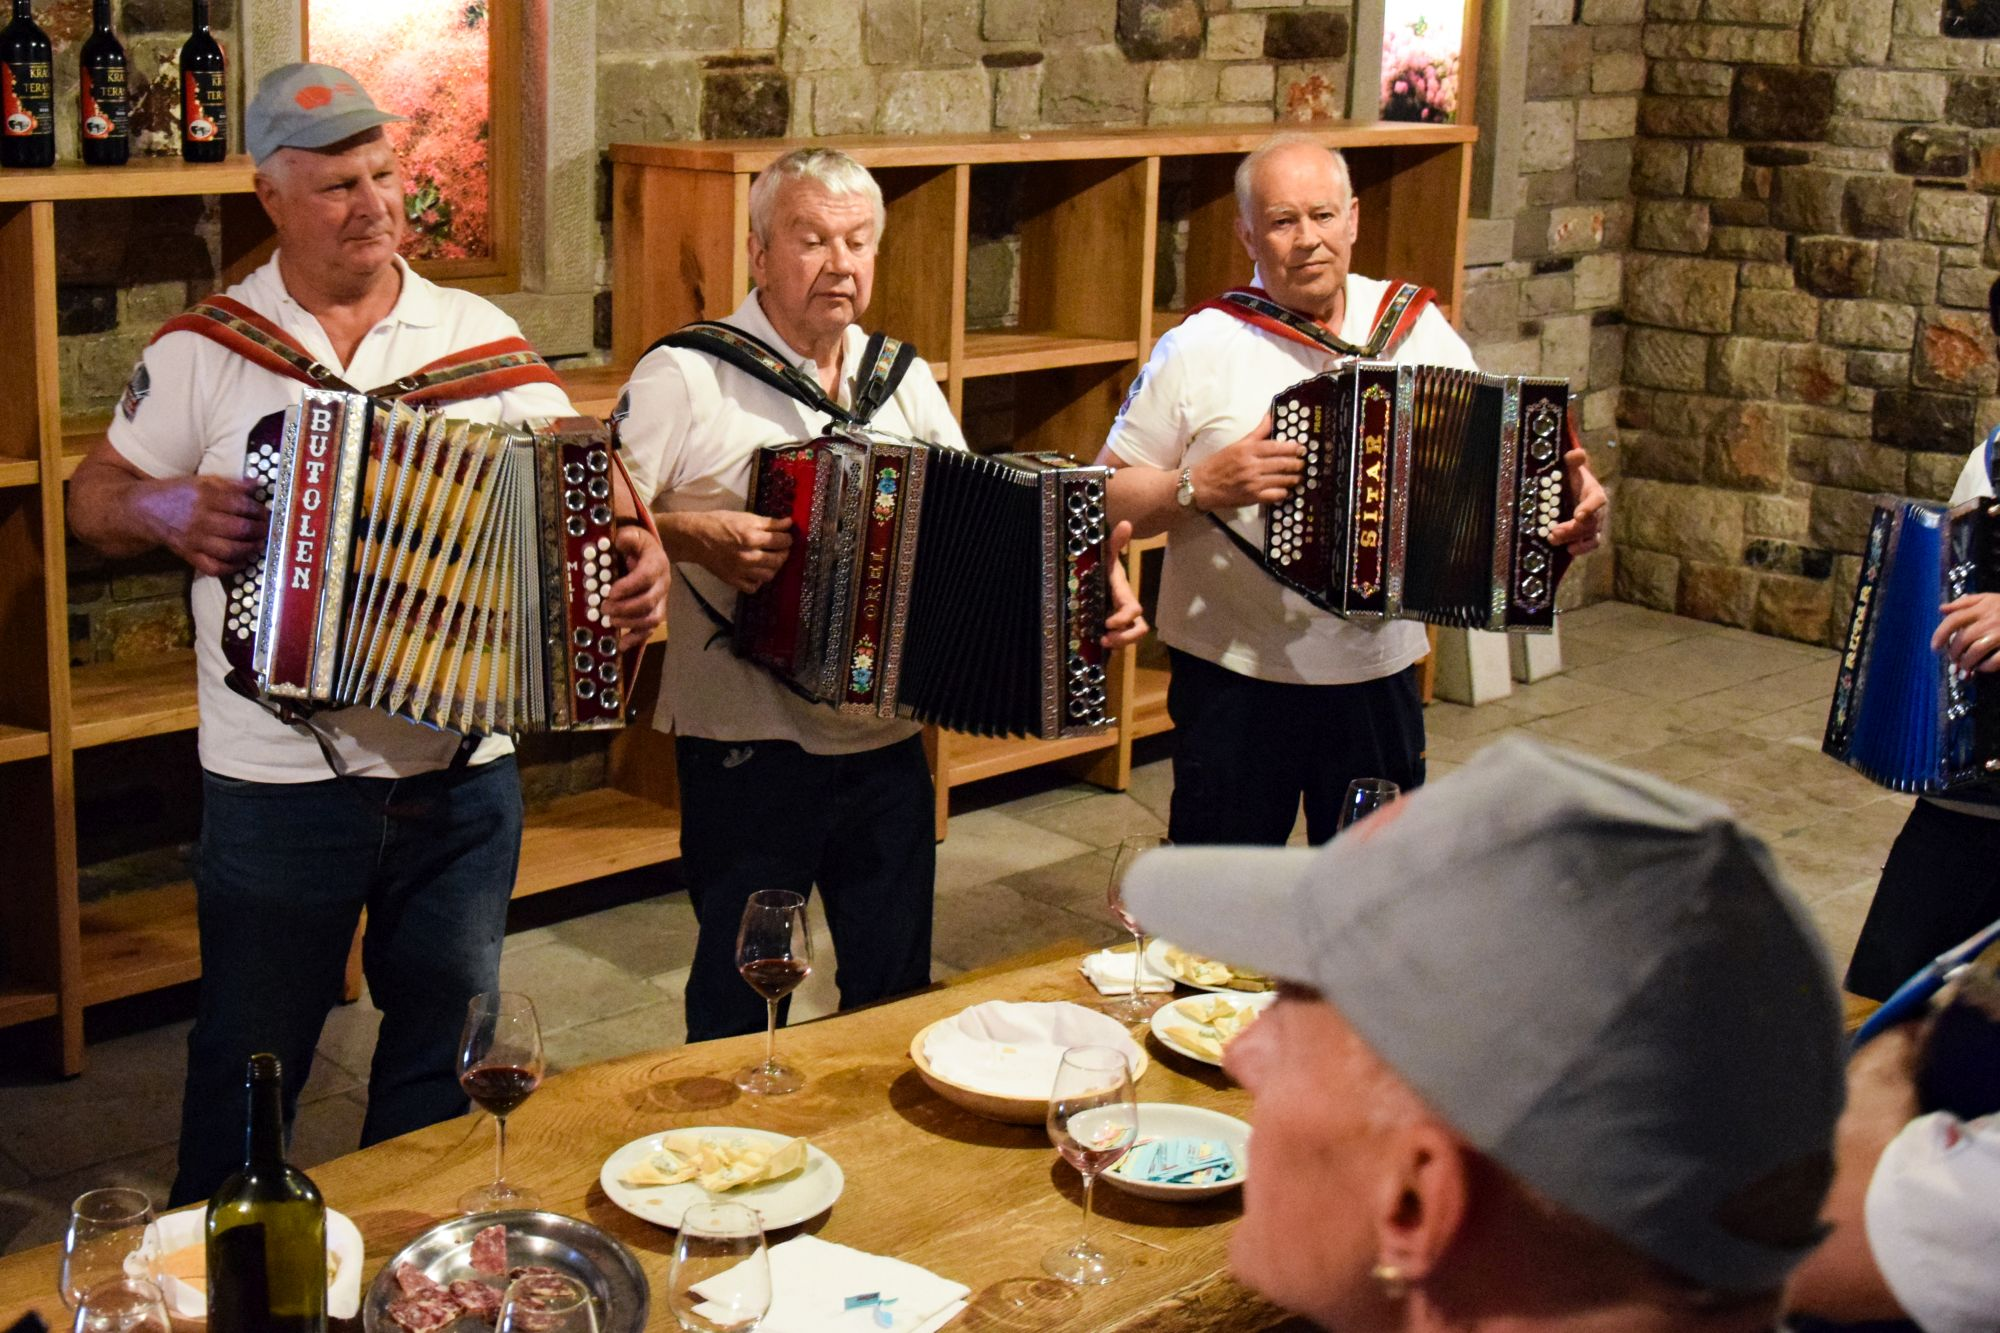 Accordion players entertain during a wine tasting session in a Karst wine cellar